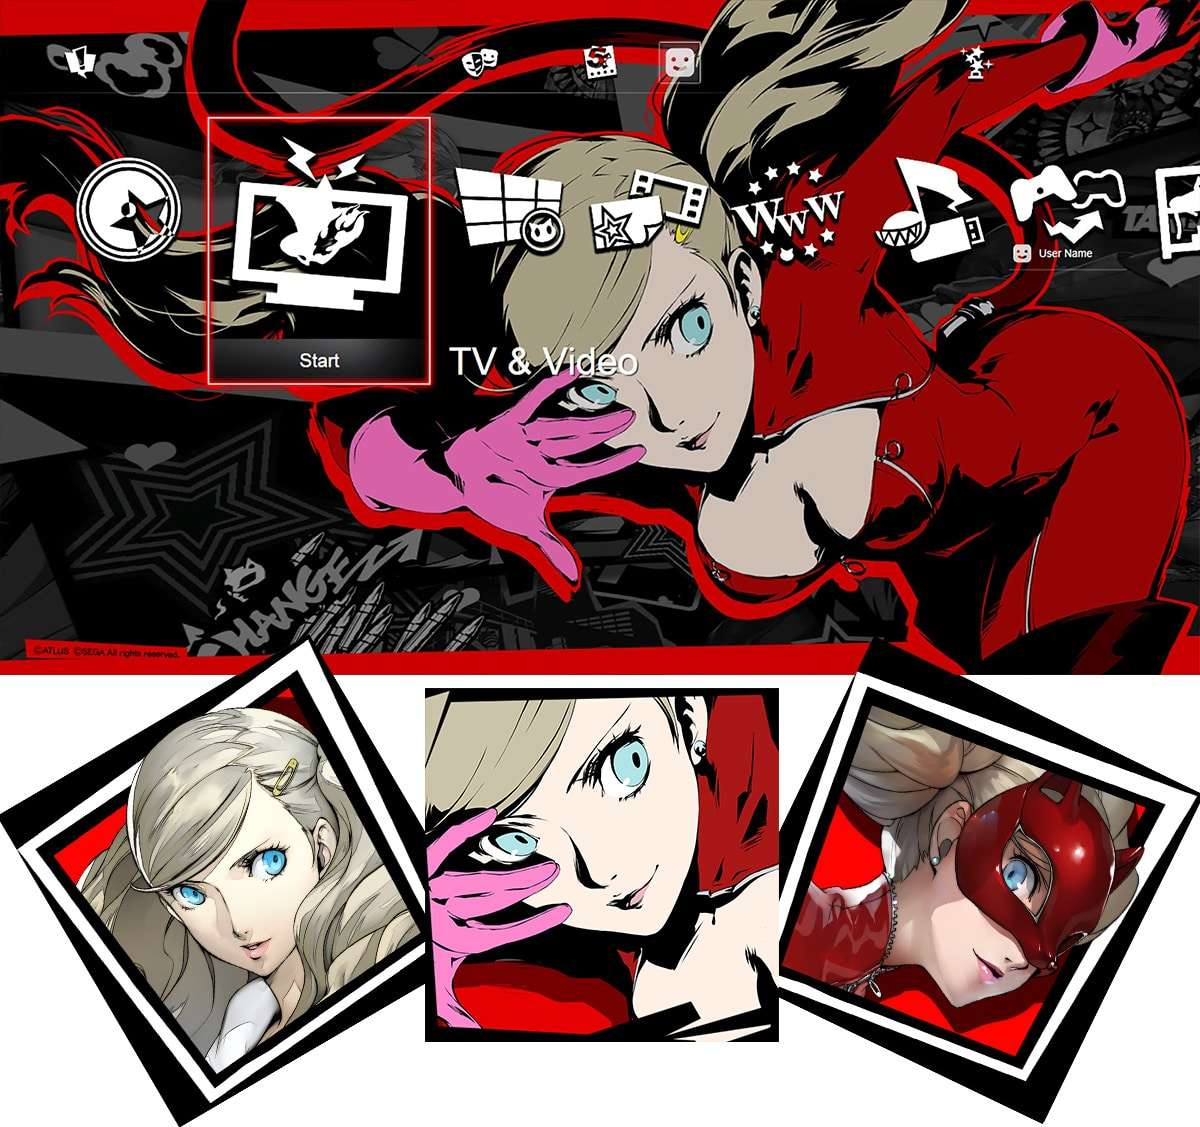 Persona 5 DLC, Character Themes and Avatars, and Patch 1 01